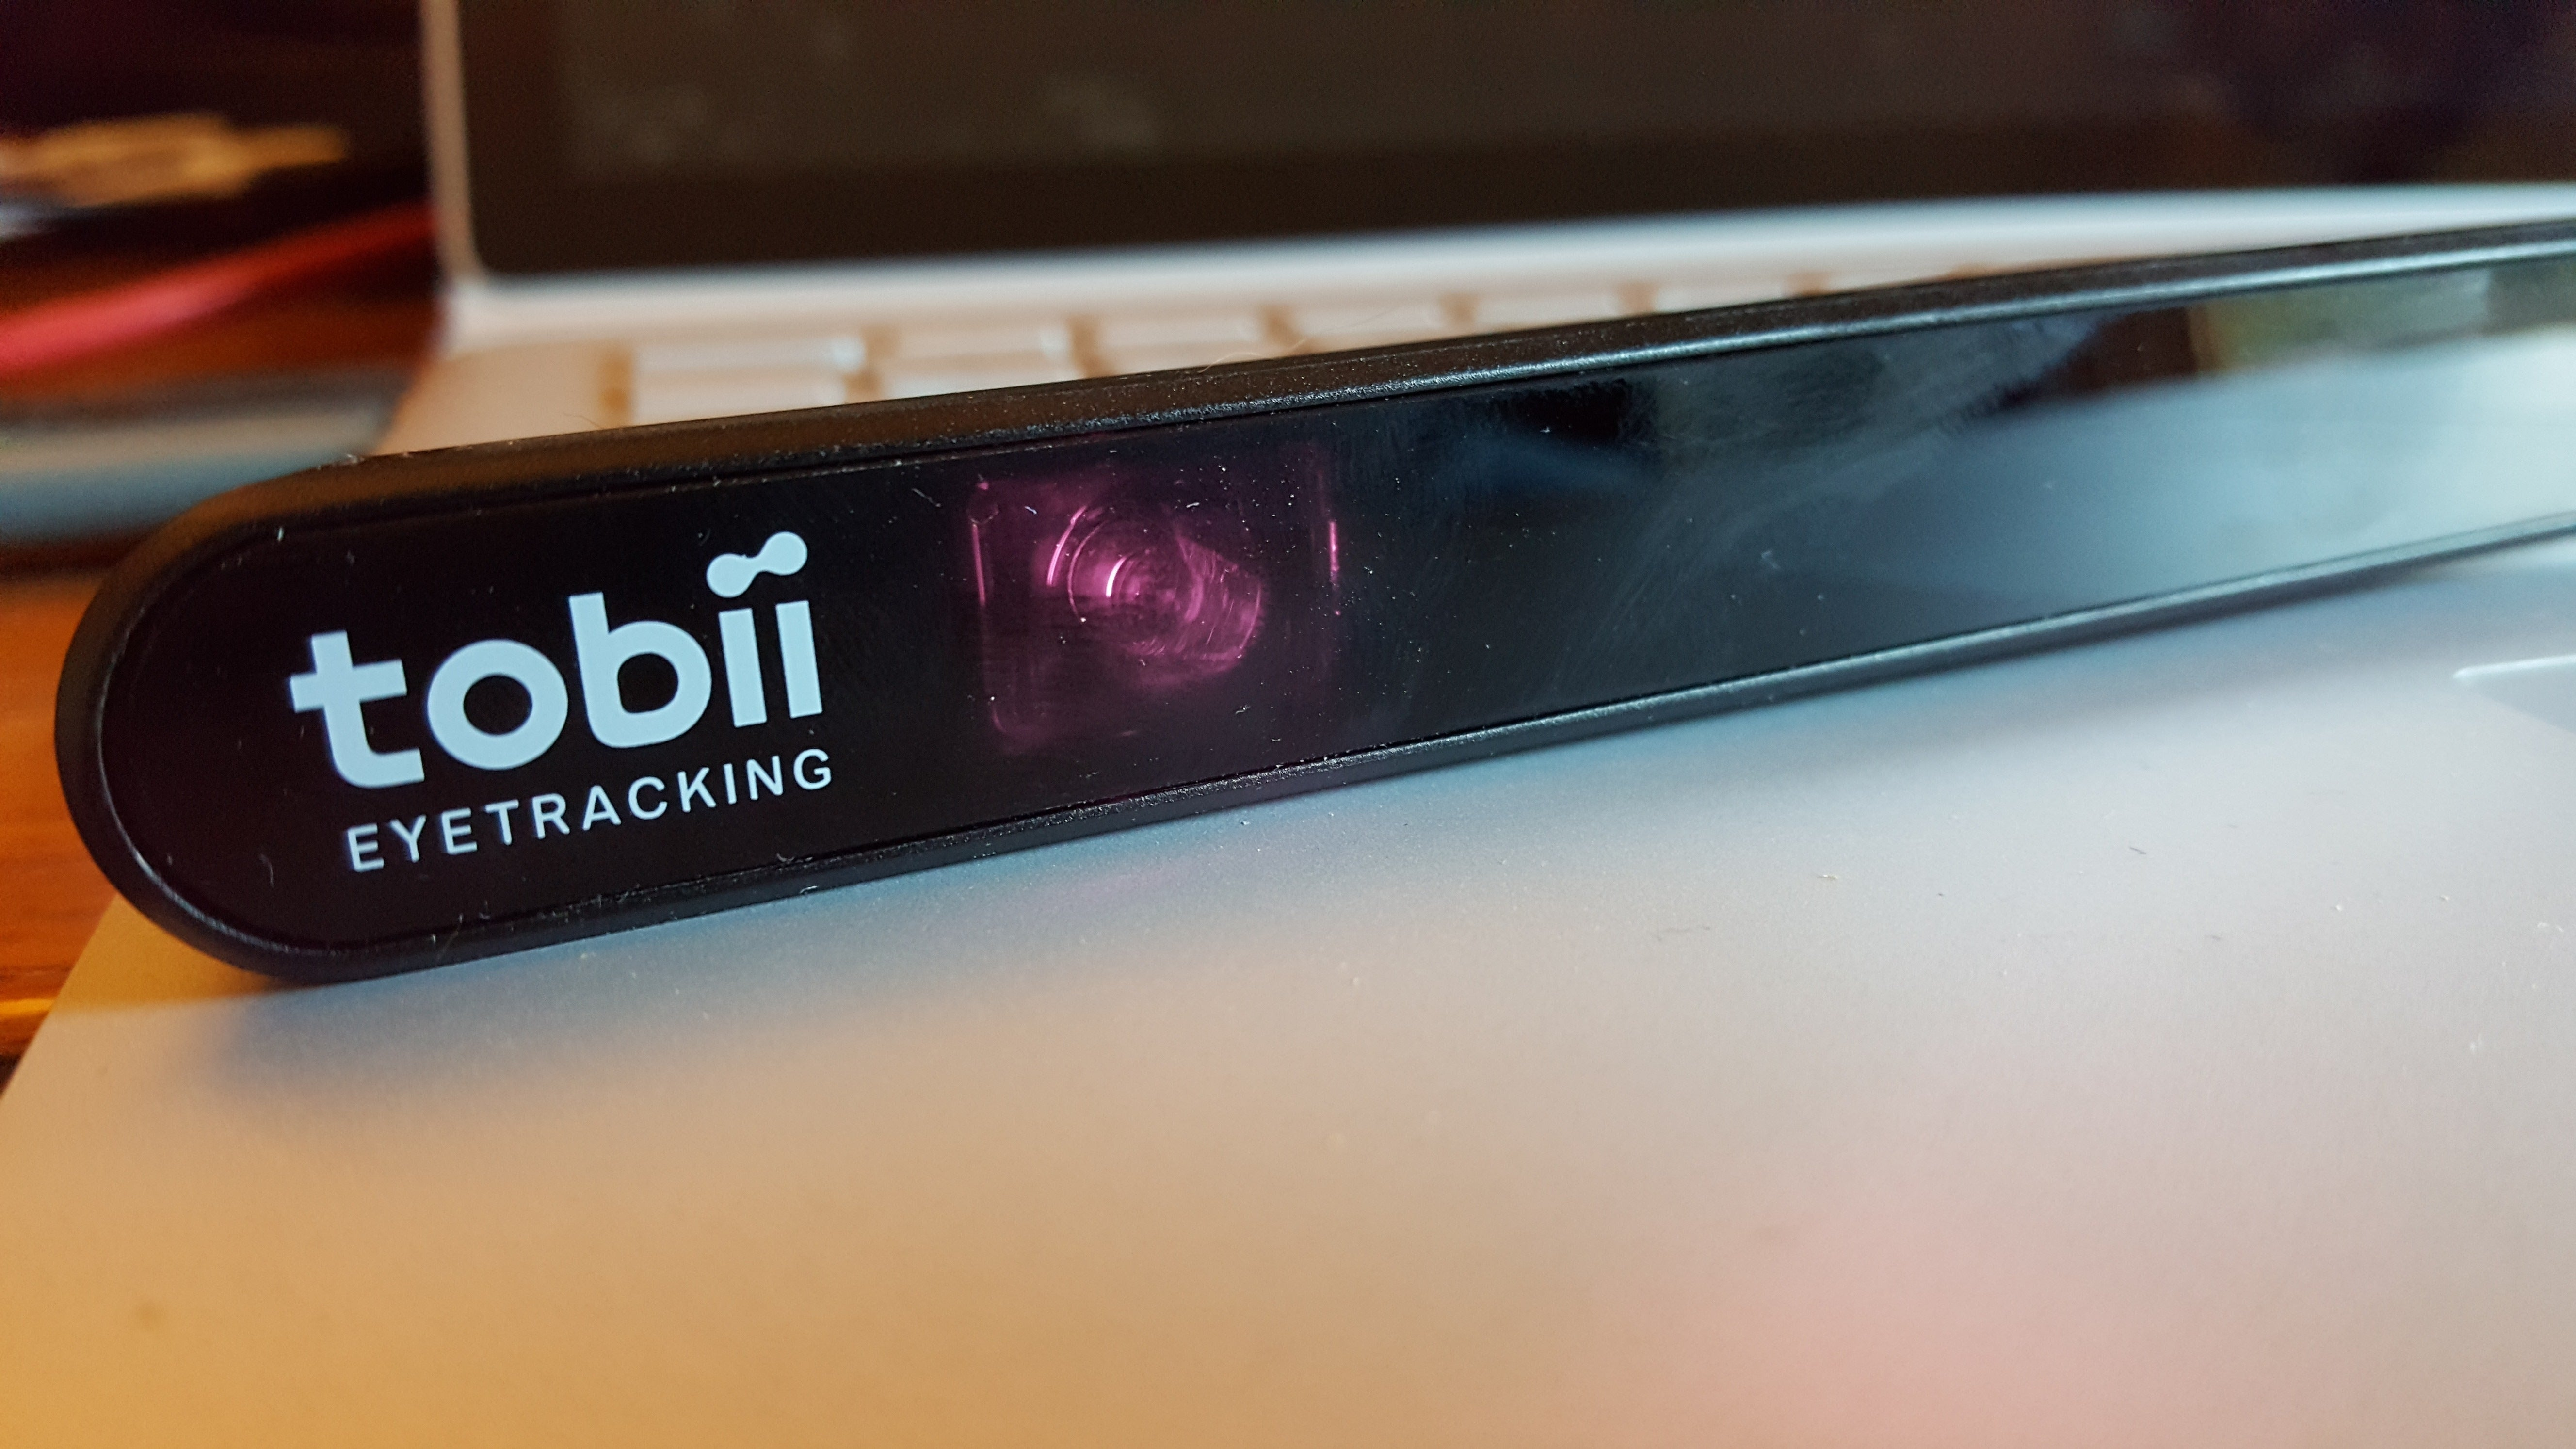 tobii eye x  Tobii Eye Tracker 4C hands-on: Mousing with your eyes has surprising ...